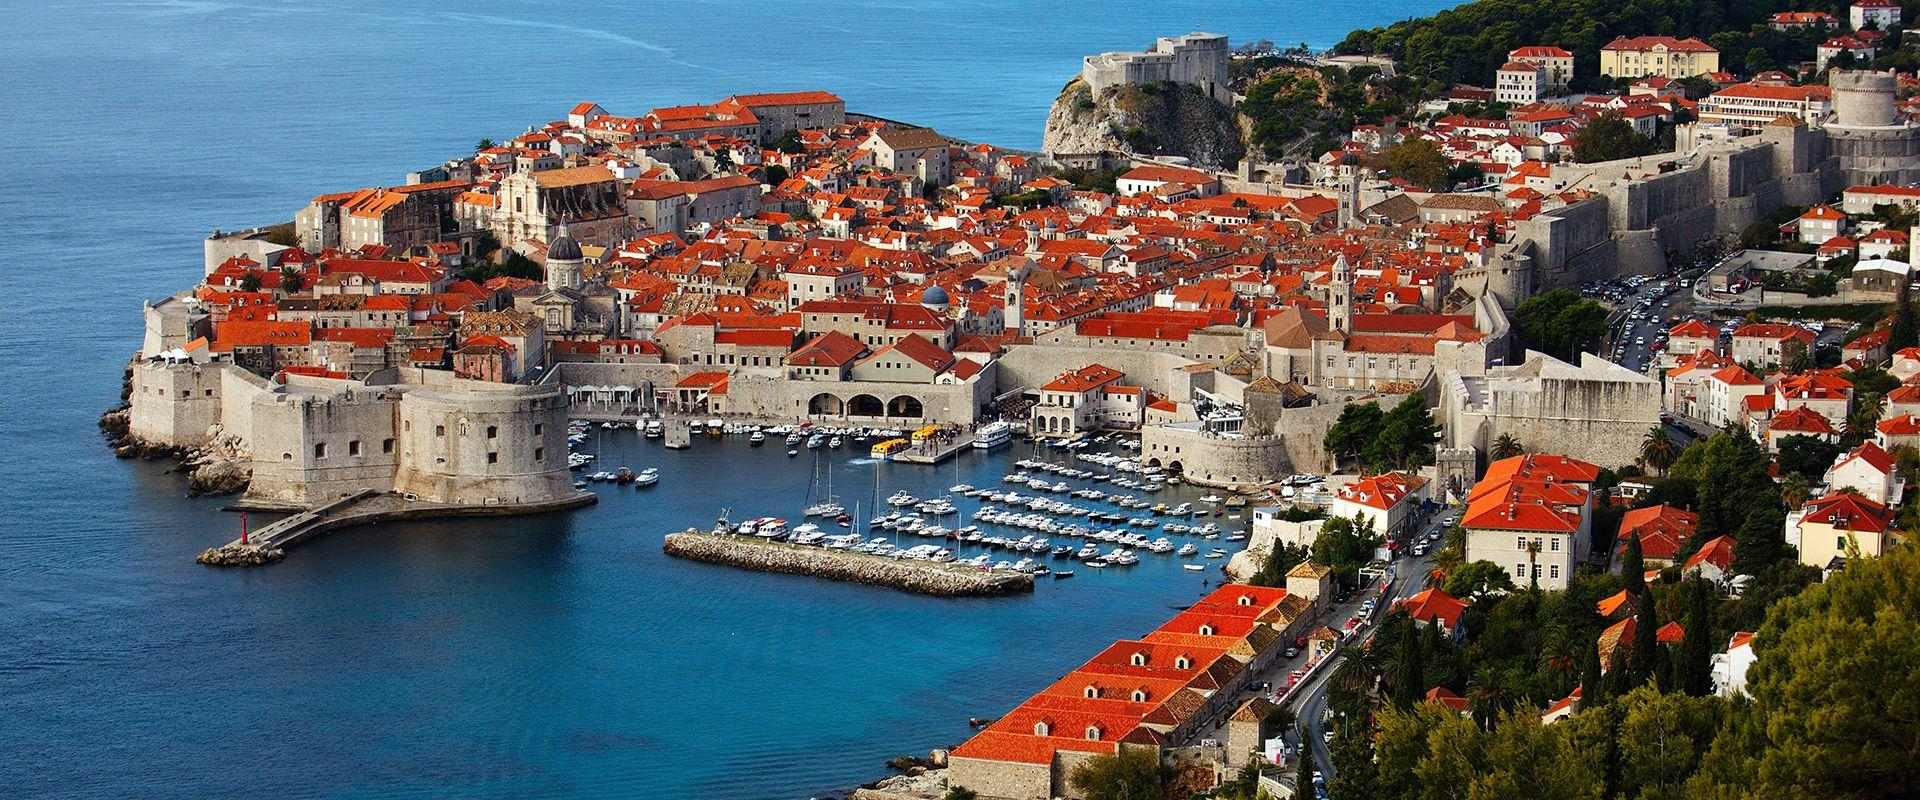 Dubrovnik wallpapers, Man Made, HQ Dubrovnik pictures